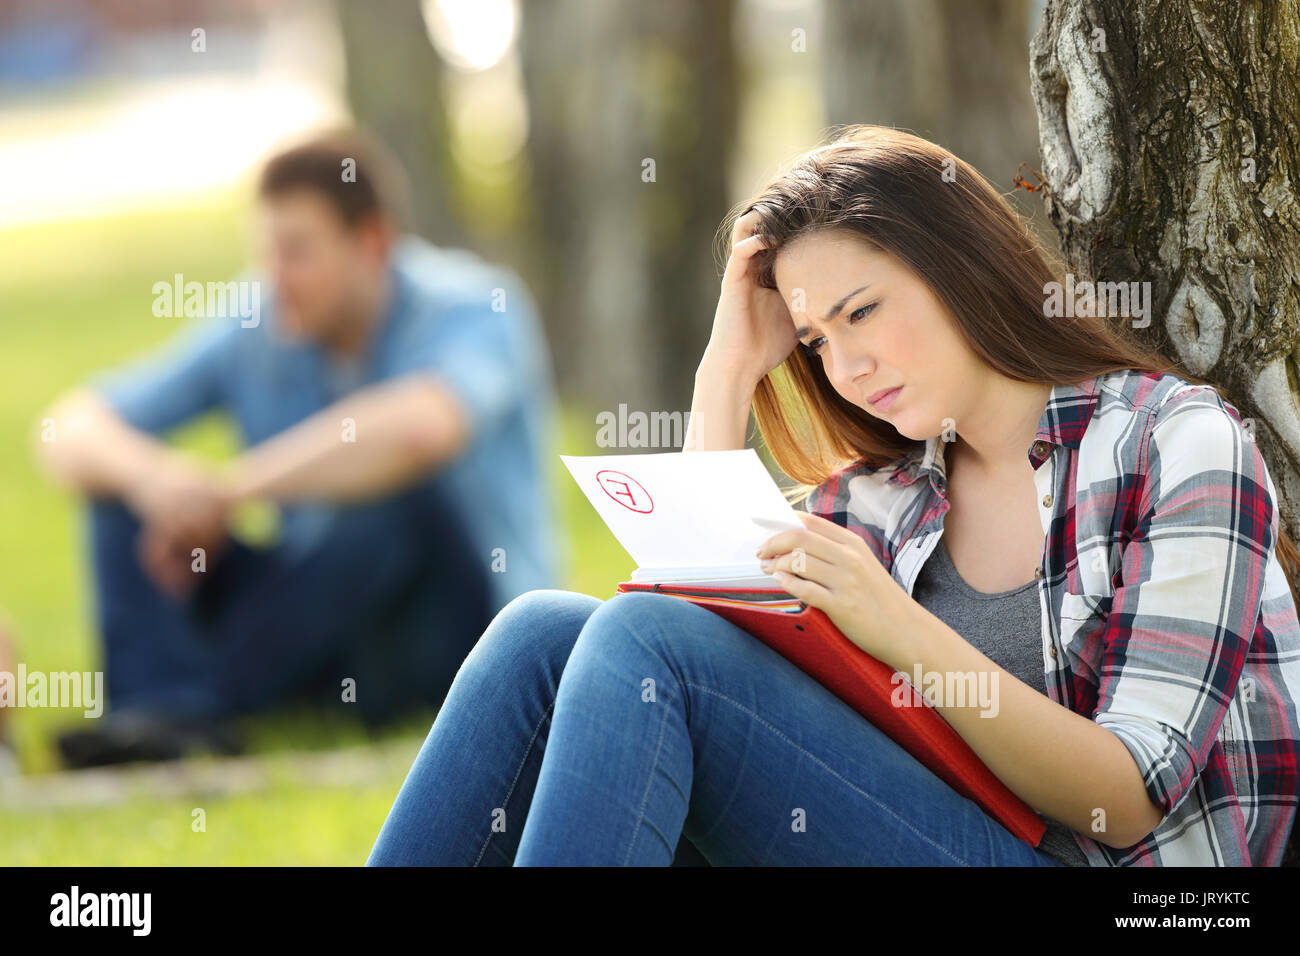 Single sad student looking at failed exam sitting on the grass in a park with unfocused people in the background - Stock Image